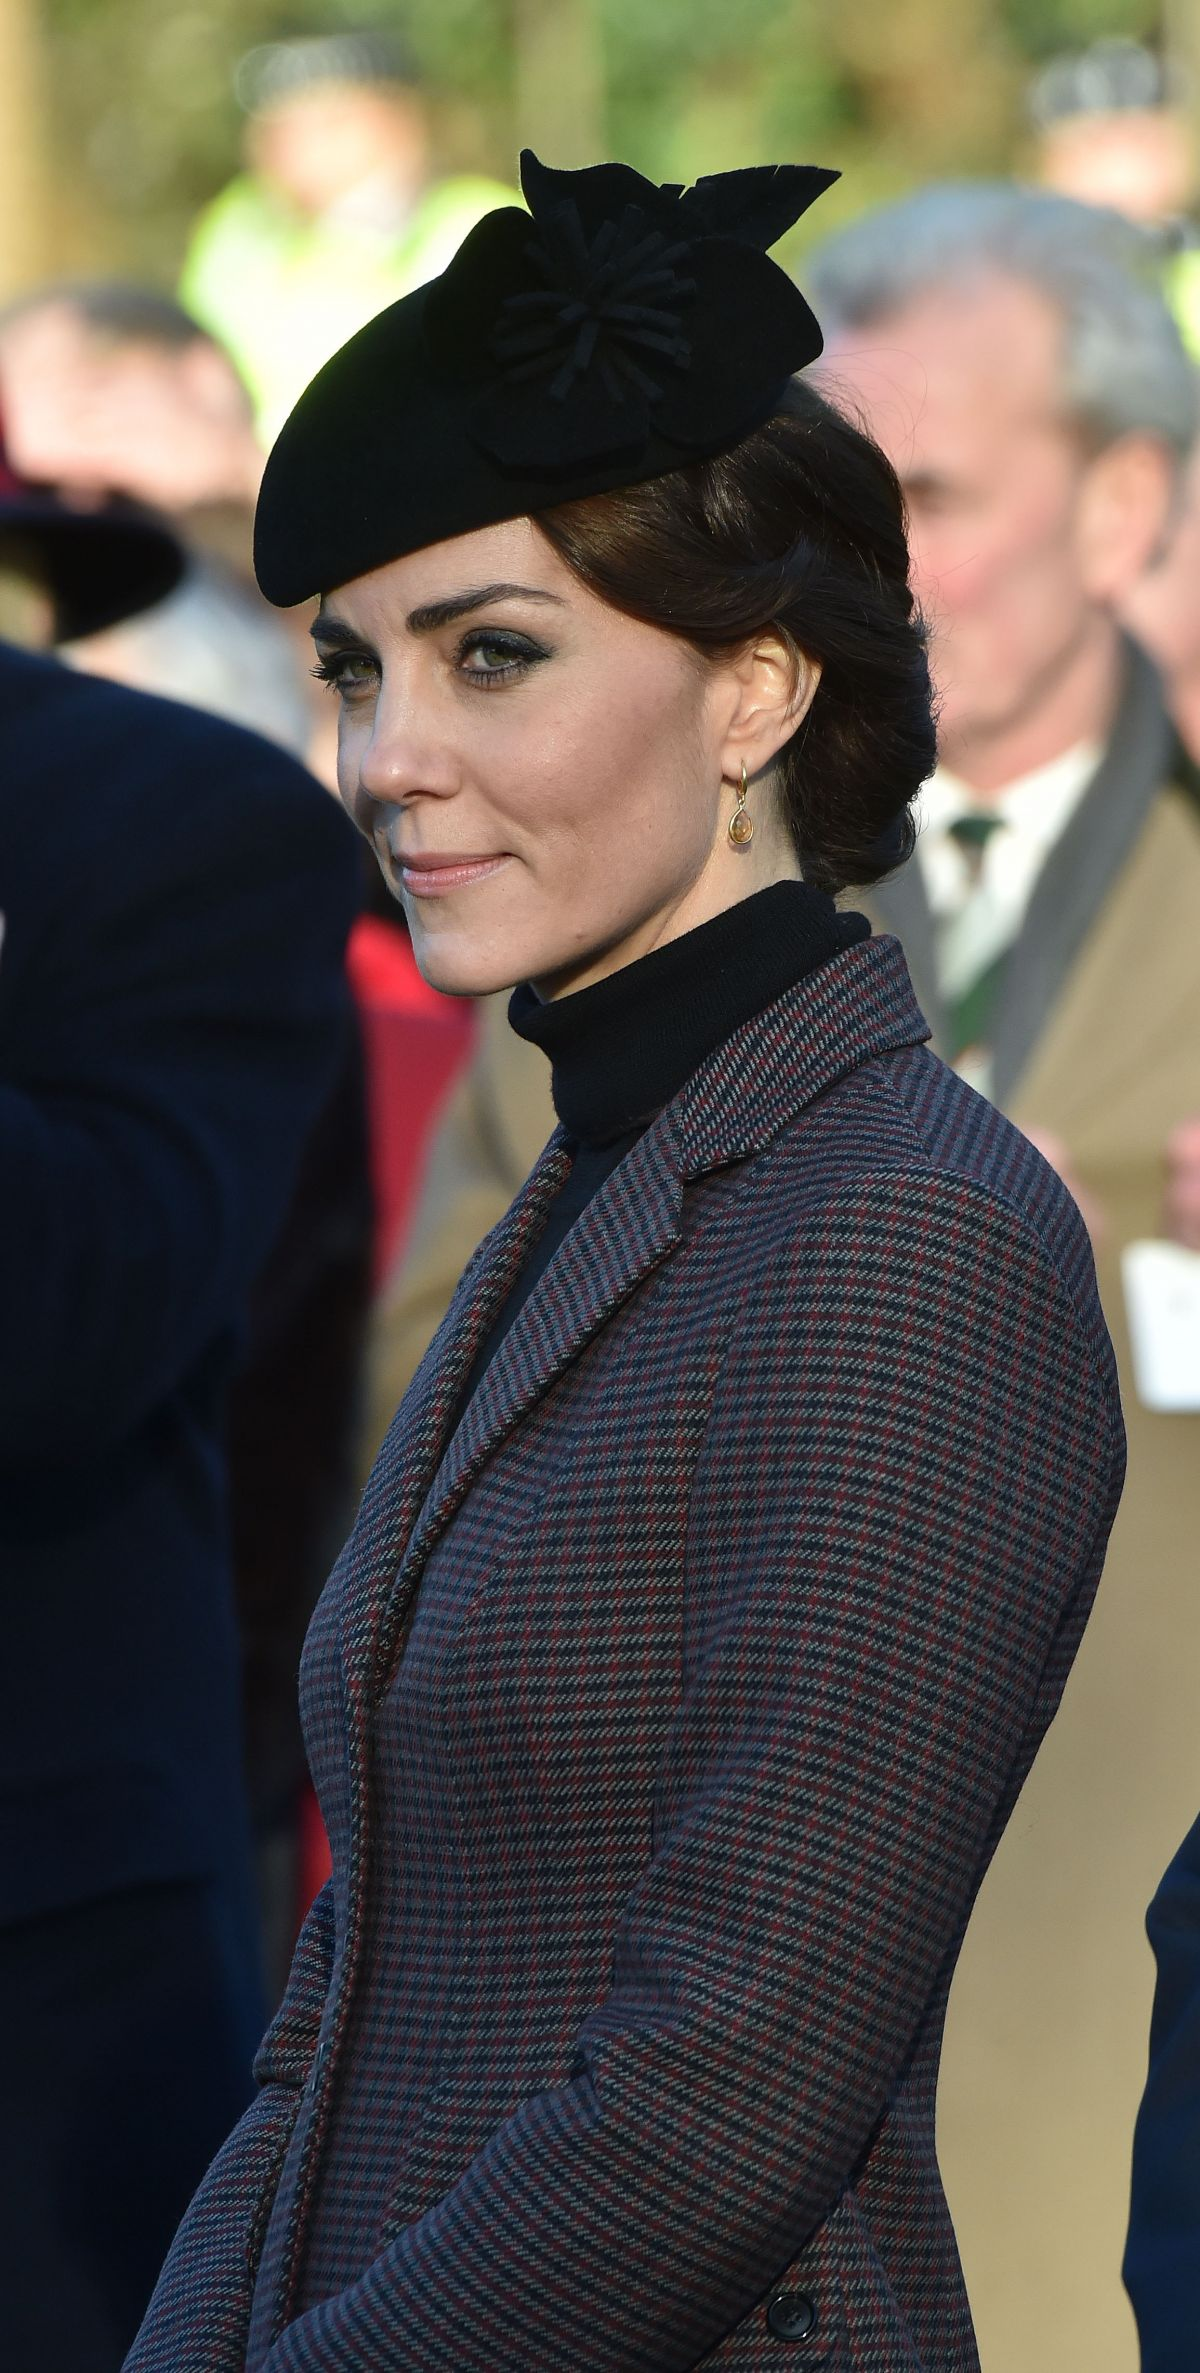 KATE MIDDLETON at a Wreath Laying Ceremony to Mark the 100th Anniversary of the Final Withdrawal from the Gallipoli Peninsula at the War Memorial Cross 01/10/2016